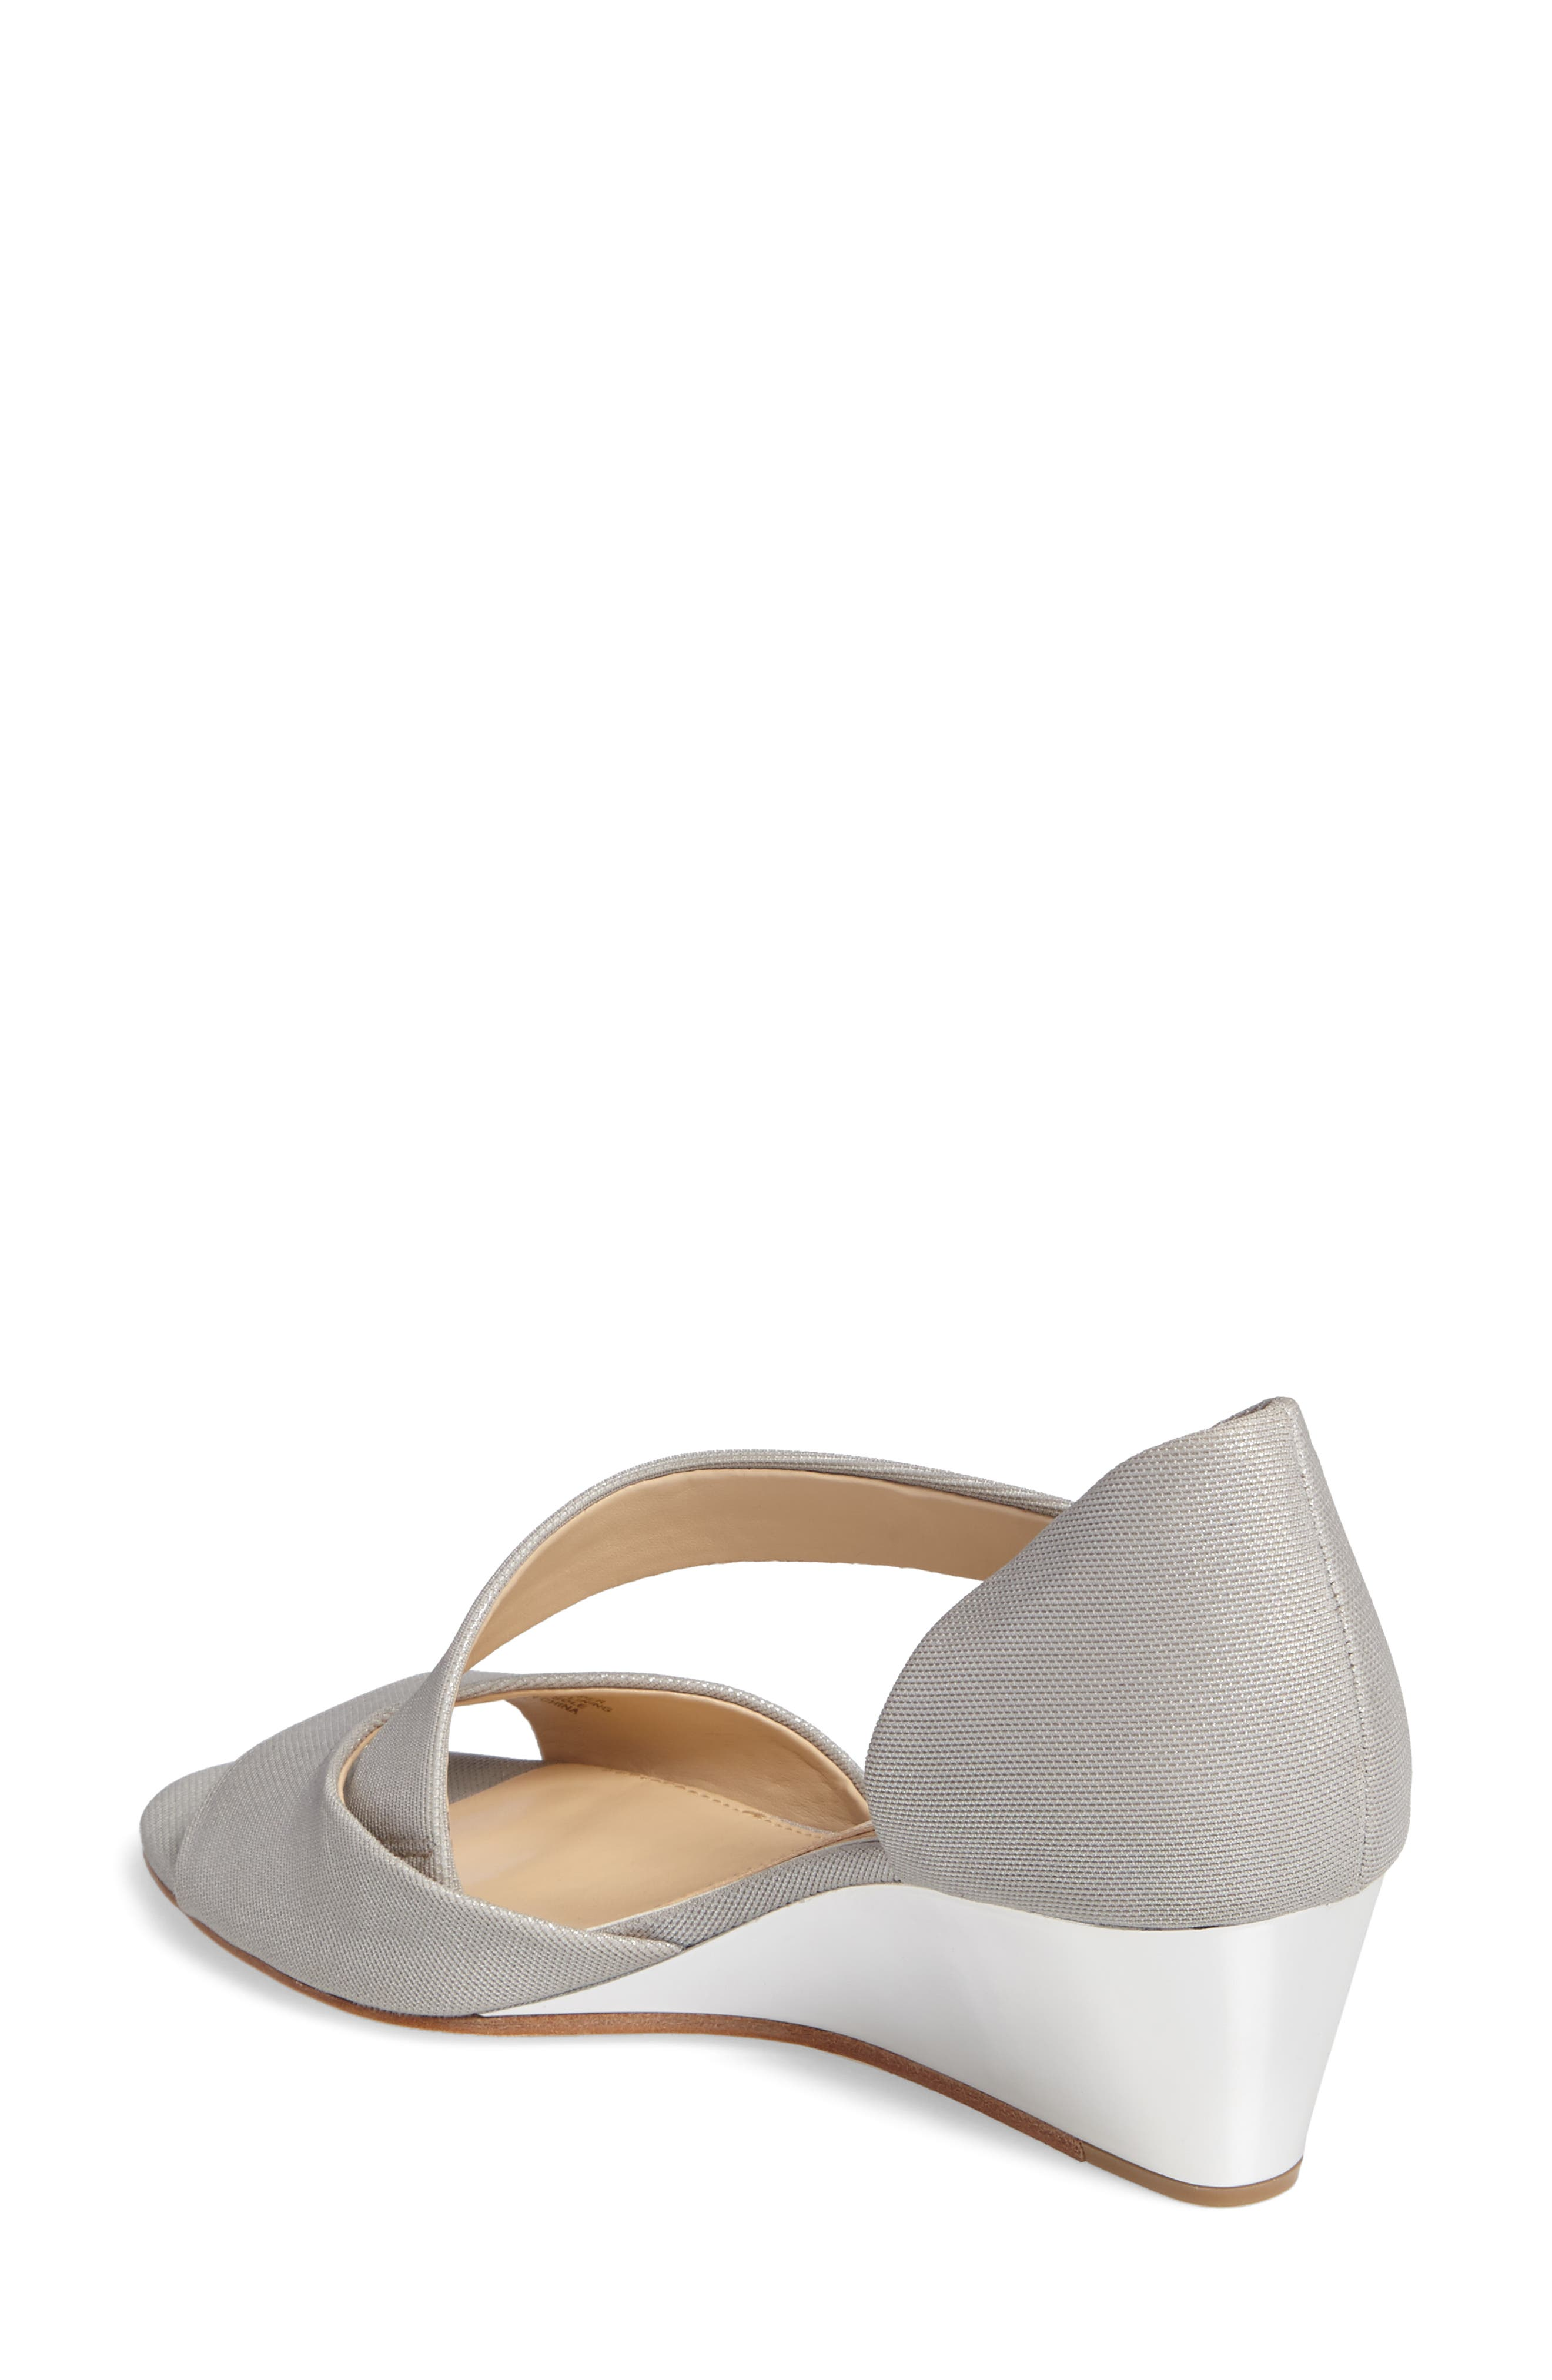 Alternate Image 2  - Imagine by Vince Camuto Jefre Wedgee Sandal (Women)